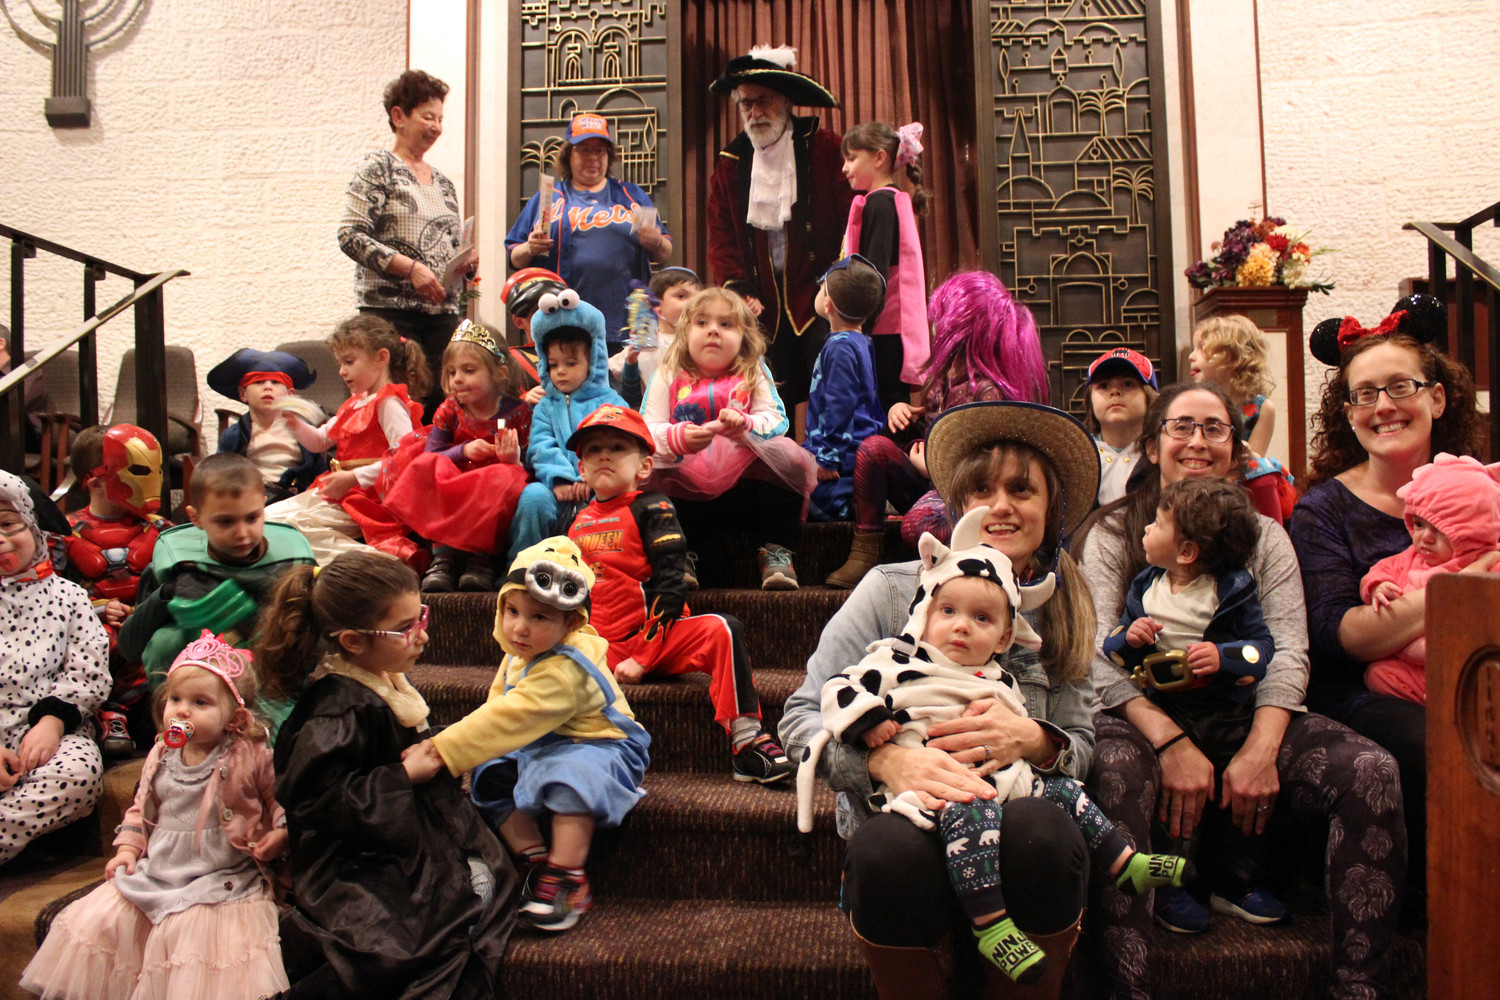 Congregants of the East Meadow Jewish Center celebrated the Jewish holiday of Purim on Feb. 28 by holding a costume parade and contest.